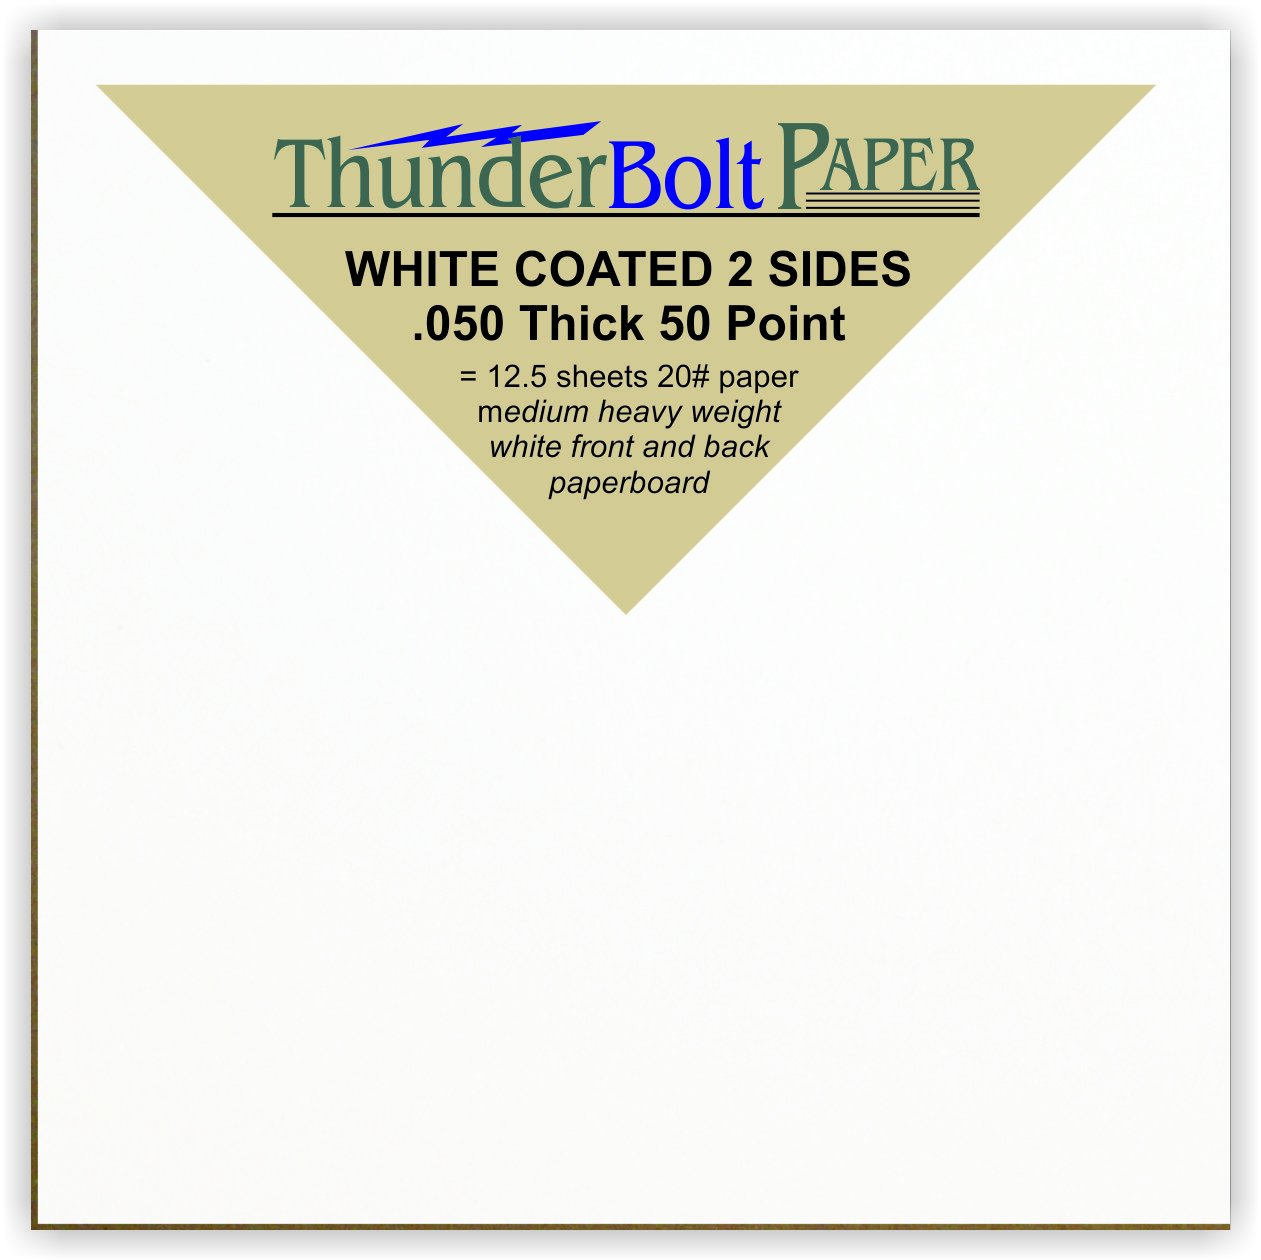 1200 Sheets Chipboard 50pt White 1 Side - 4'' X 4'' (4X4 Inches) Small Square Card Size - Medium Thick Weight PaperBoard .050 (Point) Caliper White Coated on One Side Cardboard Paper